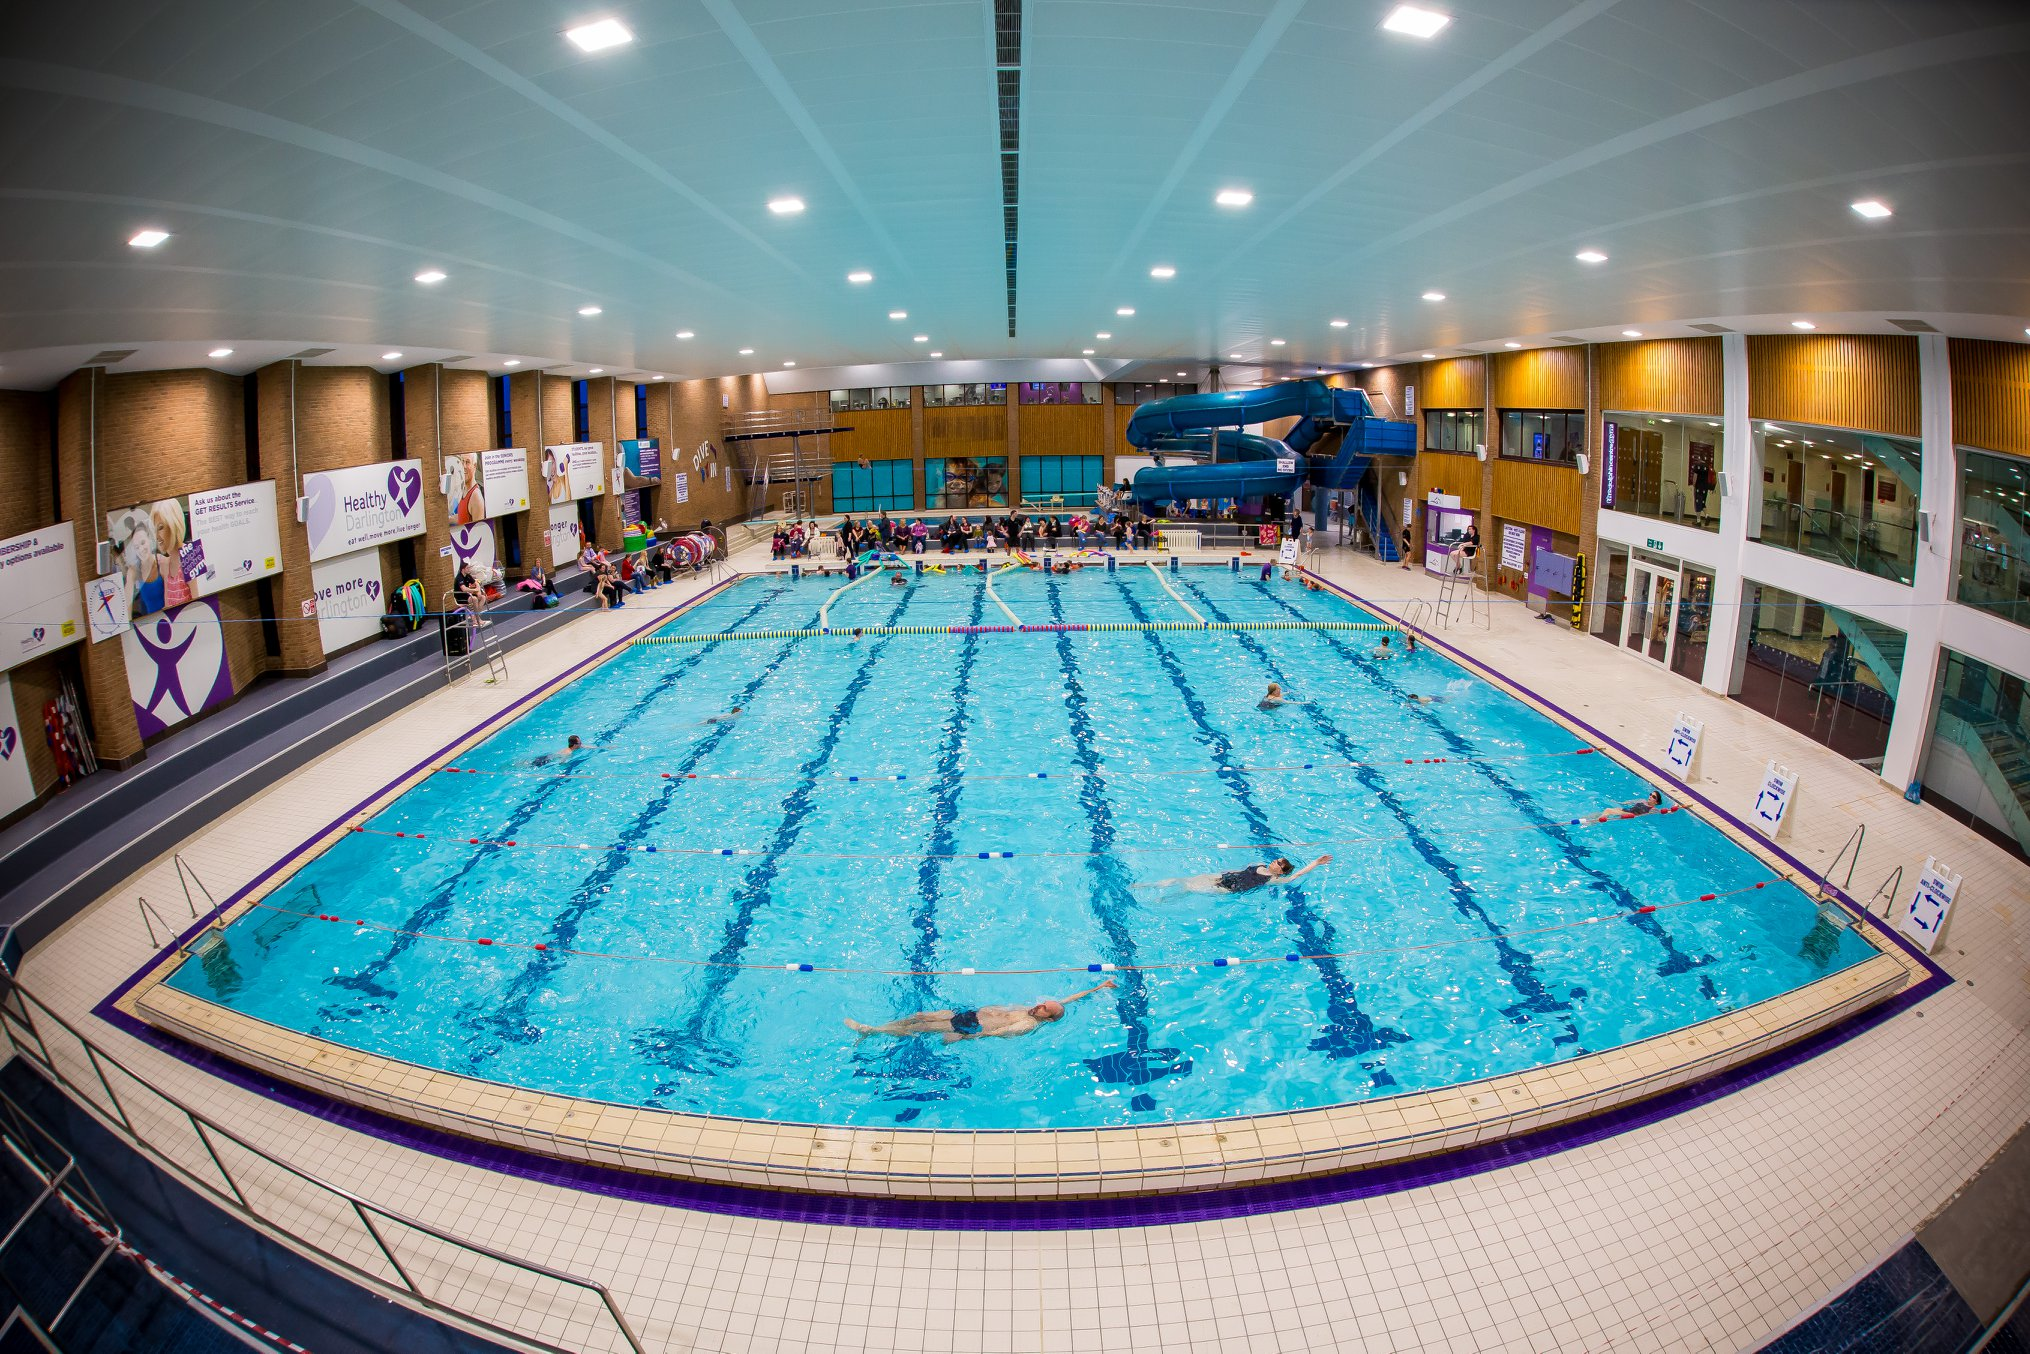 Dolphin Centre swimming pools closed